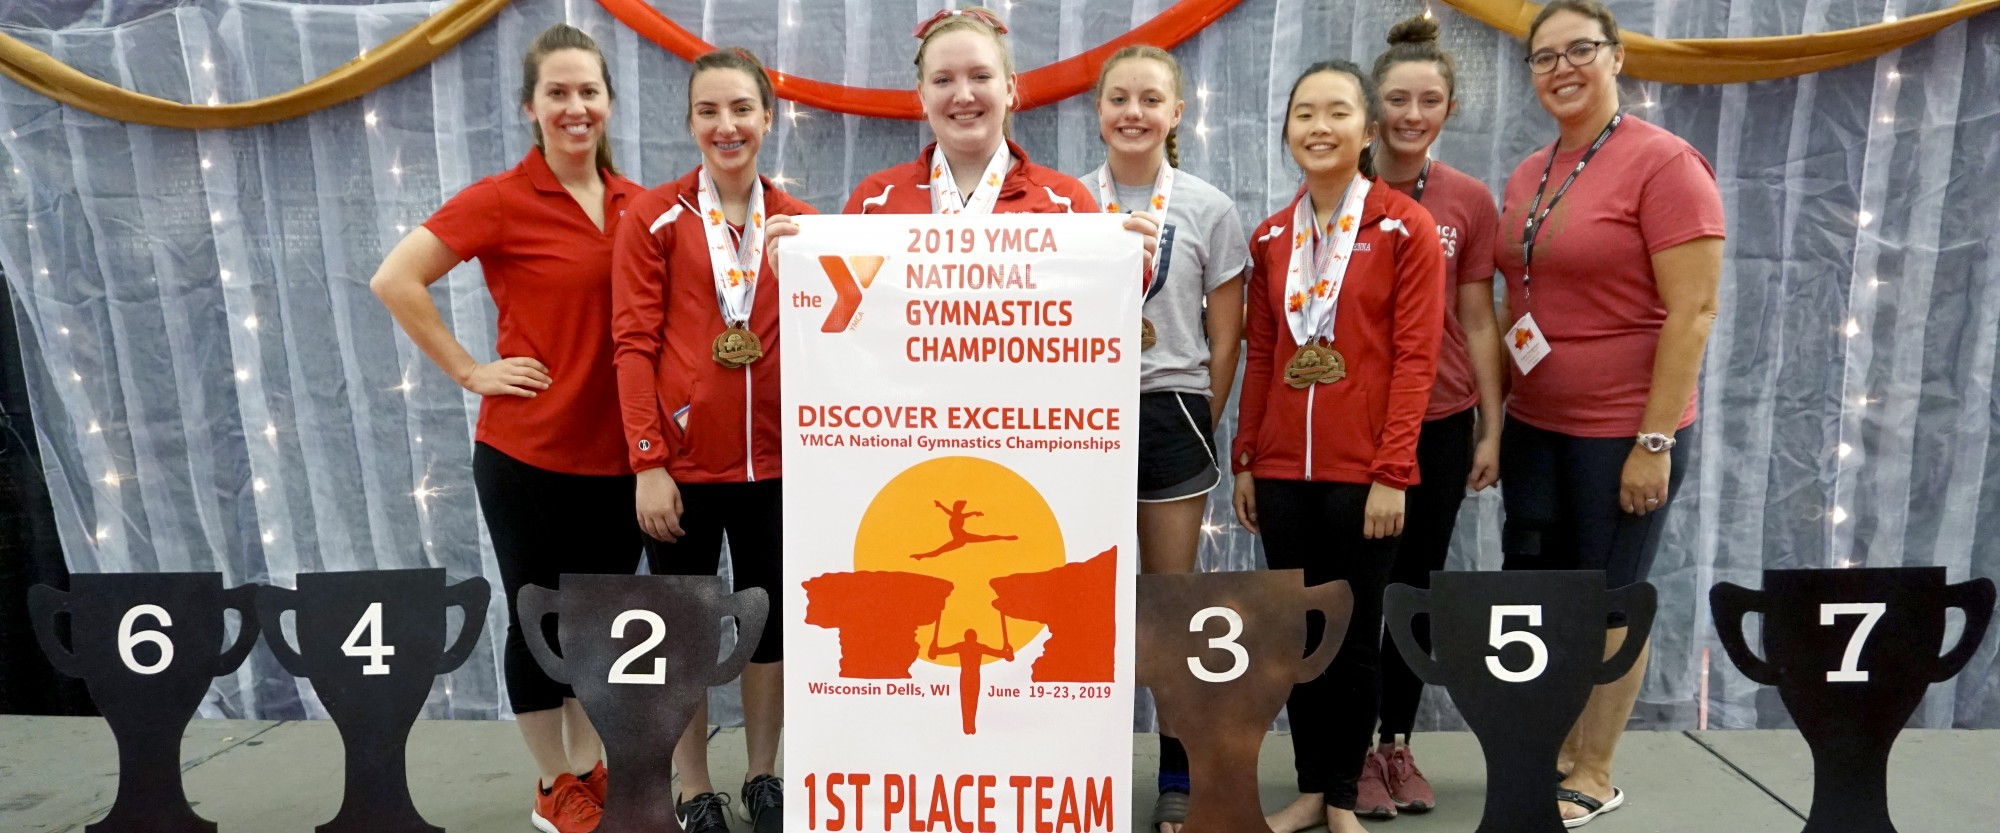 Gymnastics Team Brings Home National Championship Title